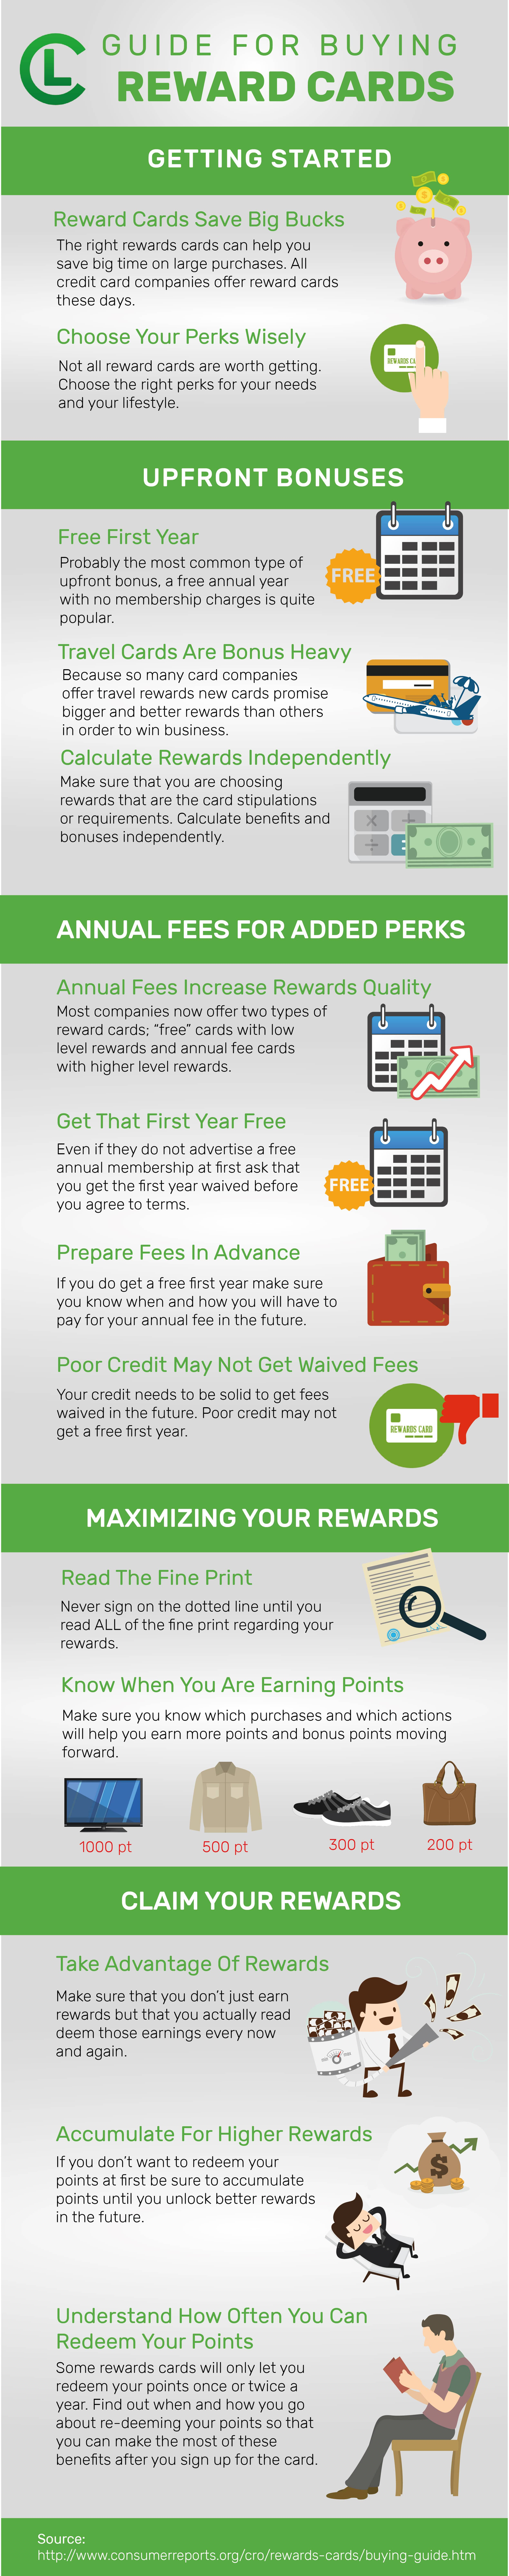 Guide For Buying Rewards Card Infographic